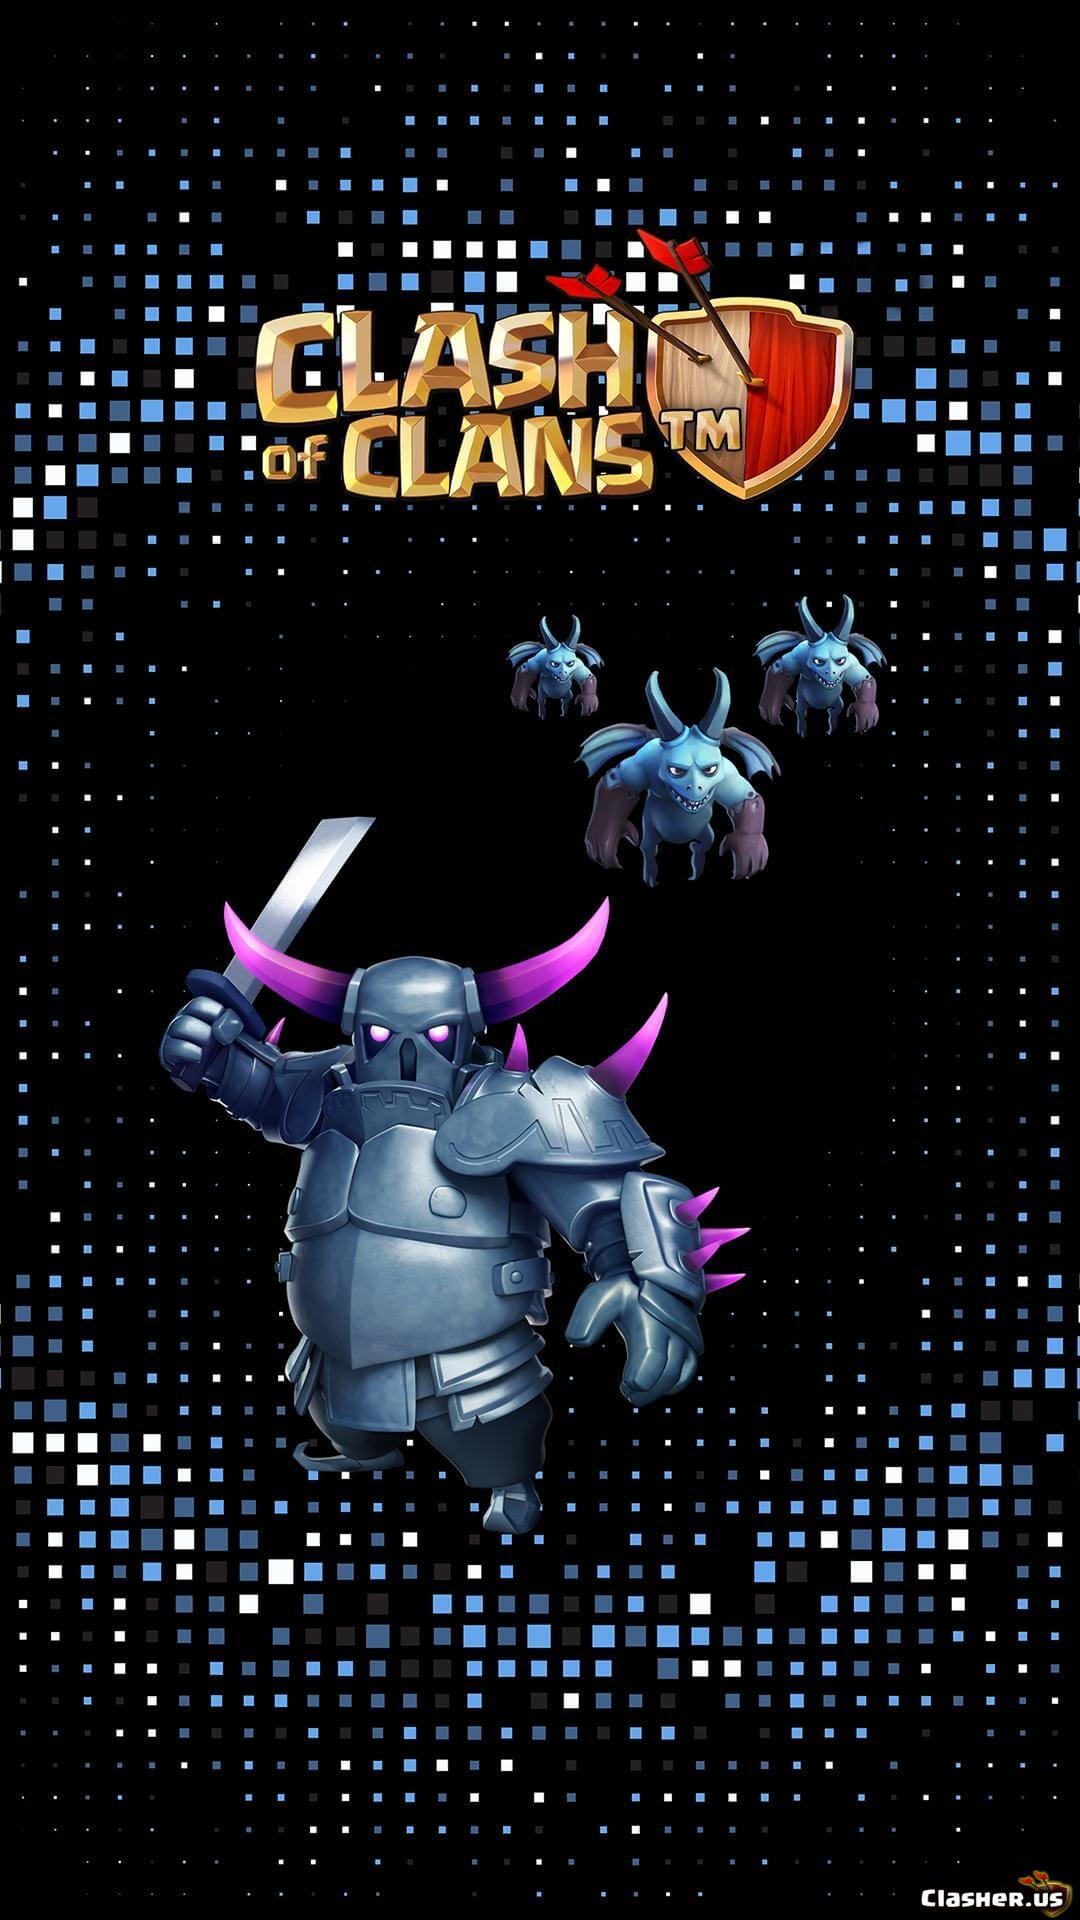 Pekka Minions 10 2019 Clash Of Clans Wallpapers Clasher Us